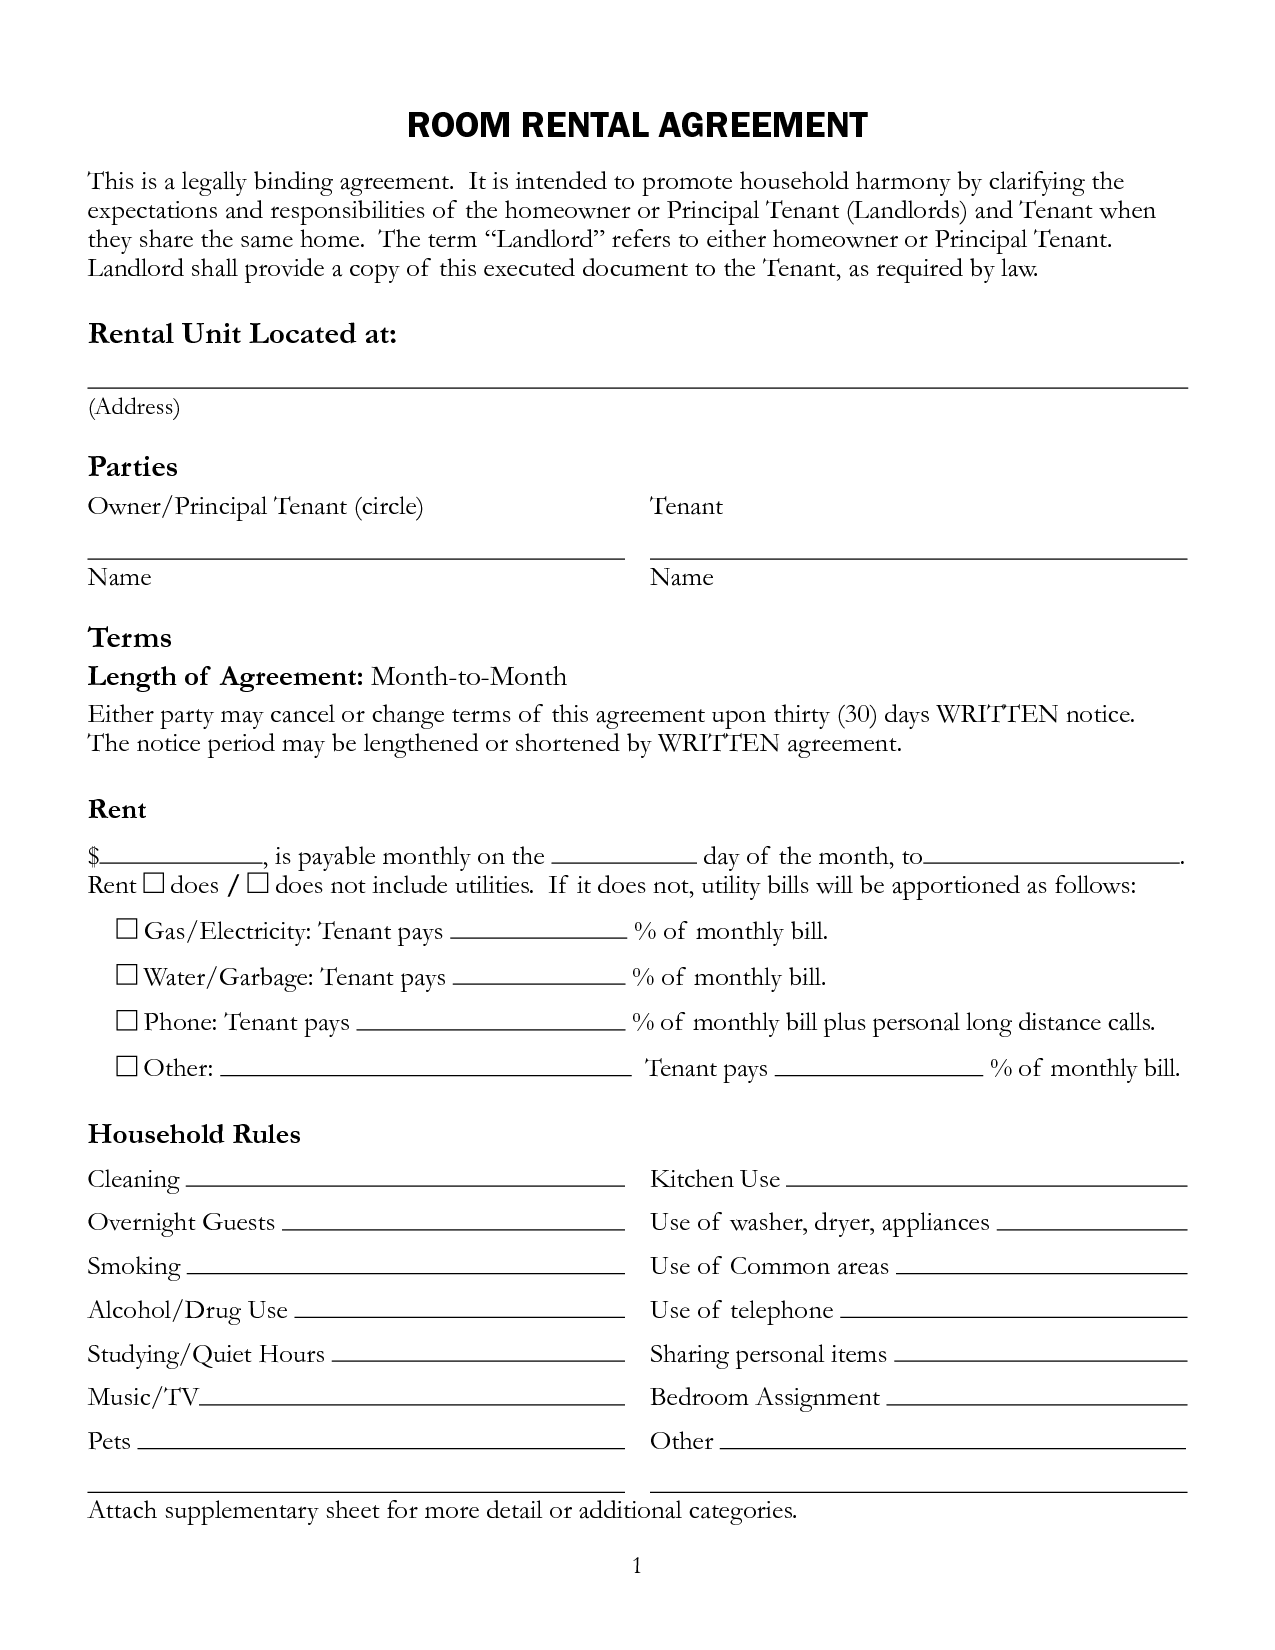 Free Printable Rental Lease Agreement Form Template   Bagnas   rental  agreement template. Free Printable Rental Lease Agreement Form Template   Bagnas